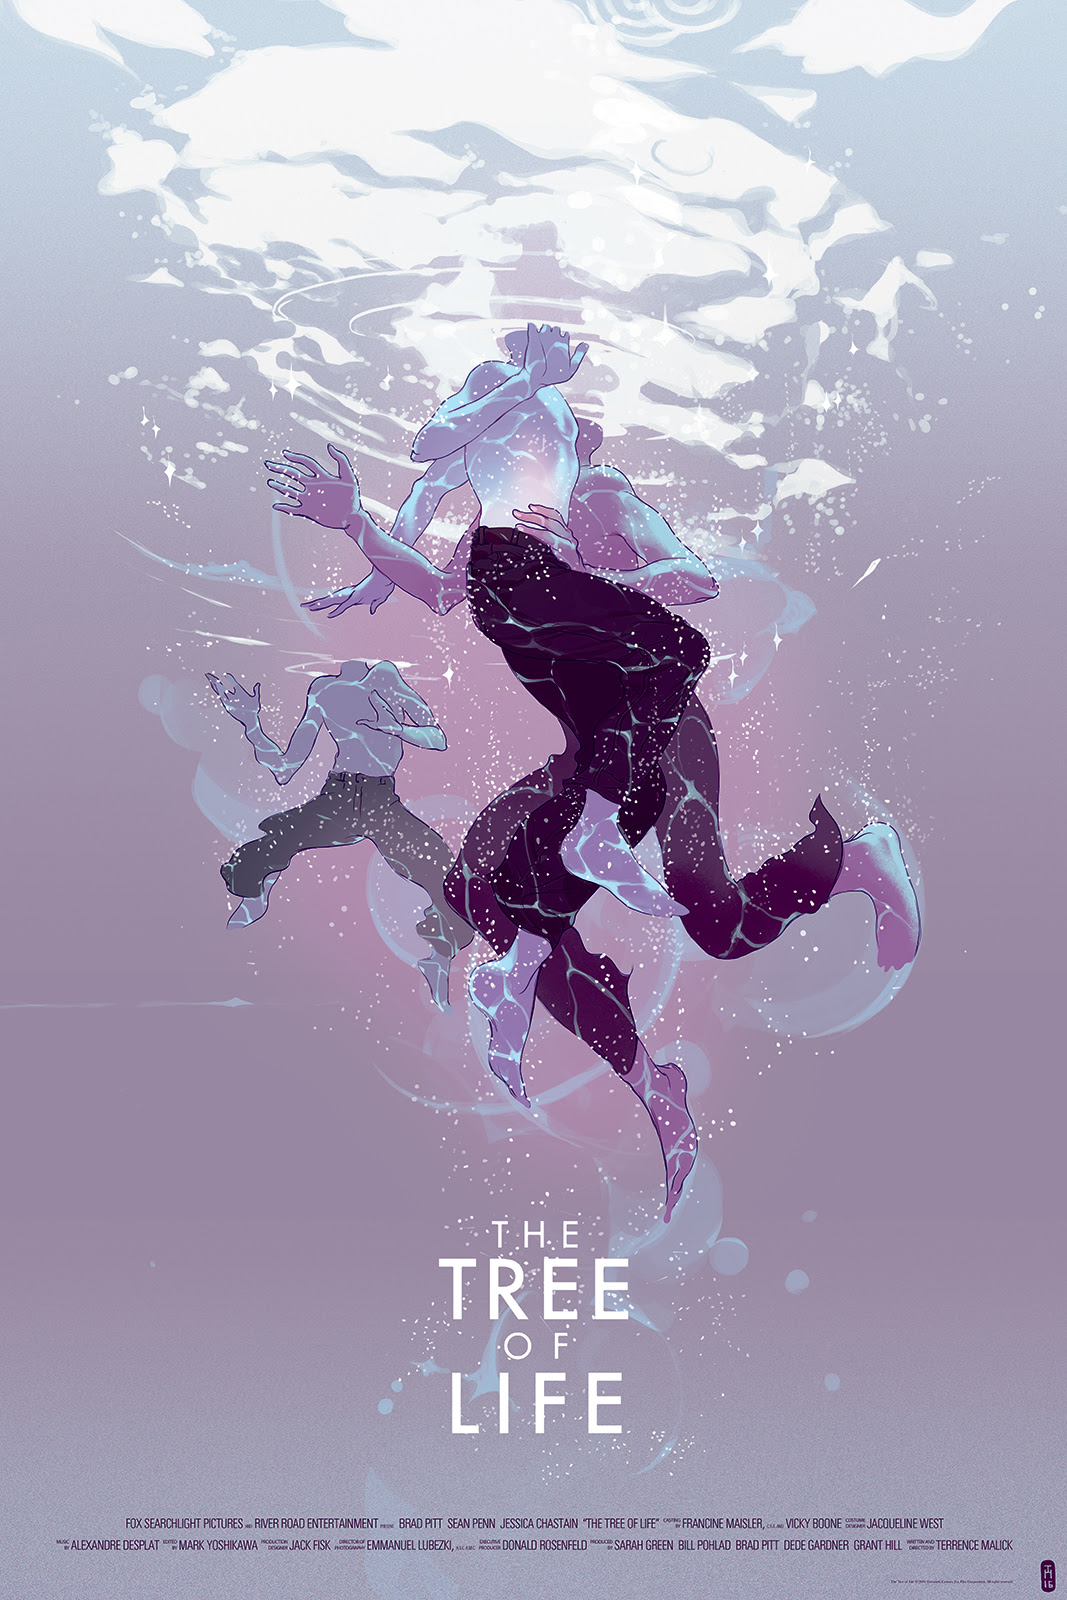 "The Tree of Life by Tomer Hanuka. 24""x36"" screen print. Hand numbered. Edition of 225. Printed by D&L Screenprinting. $45"